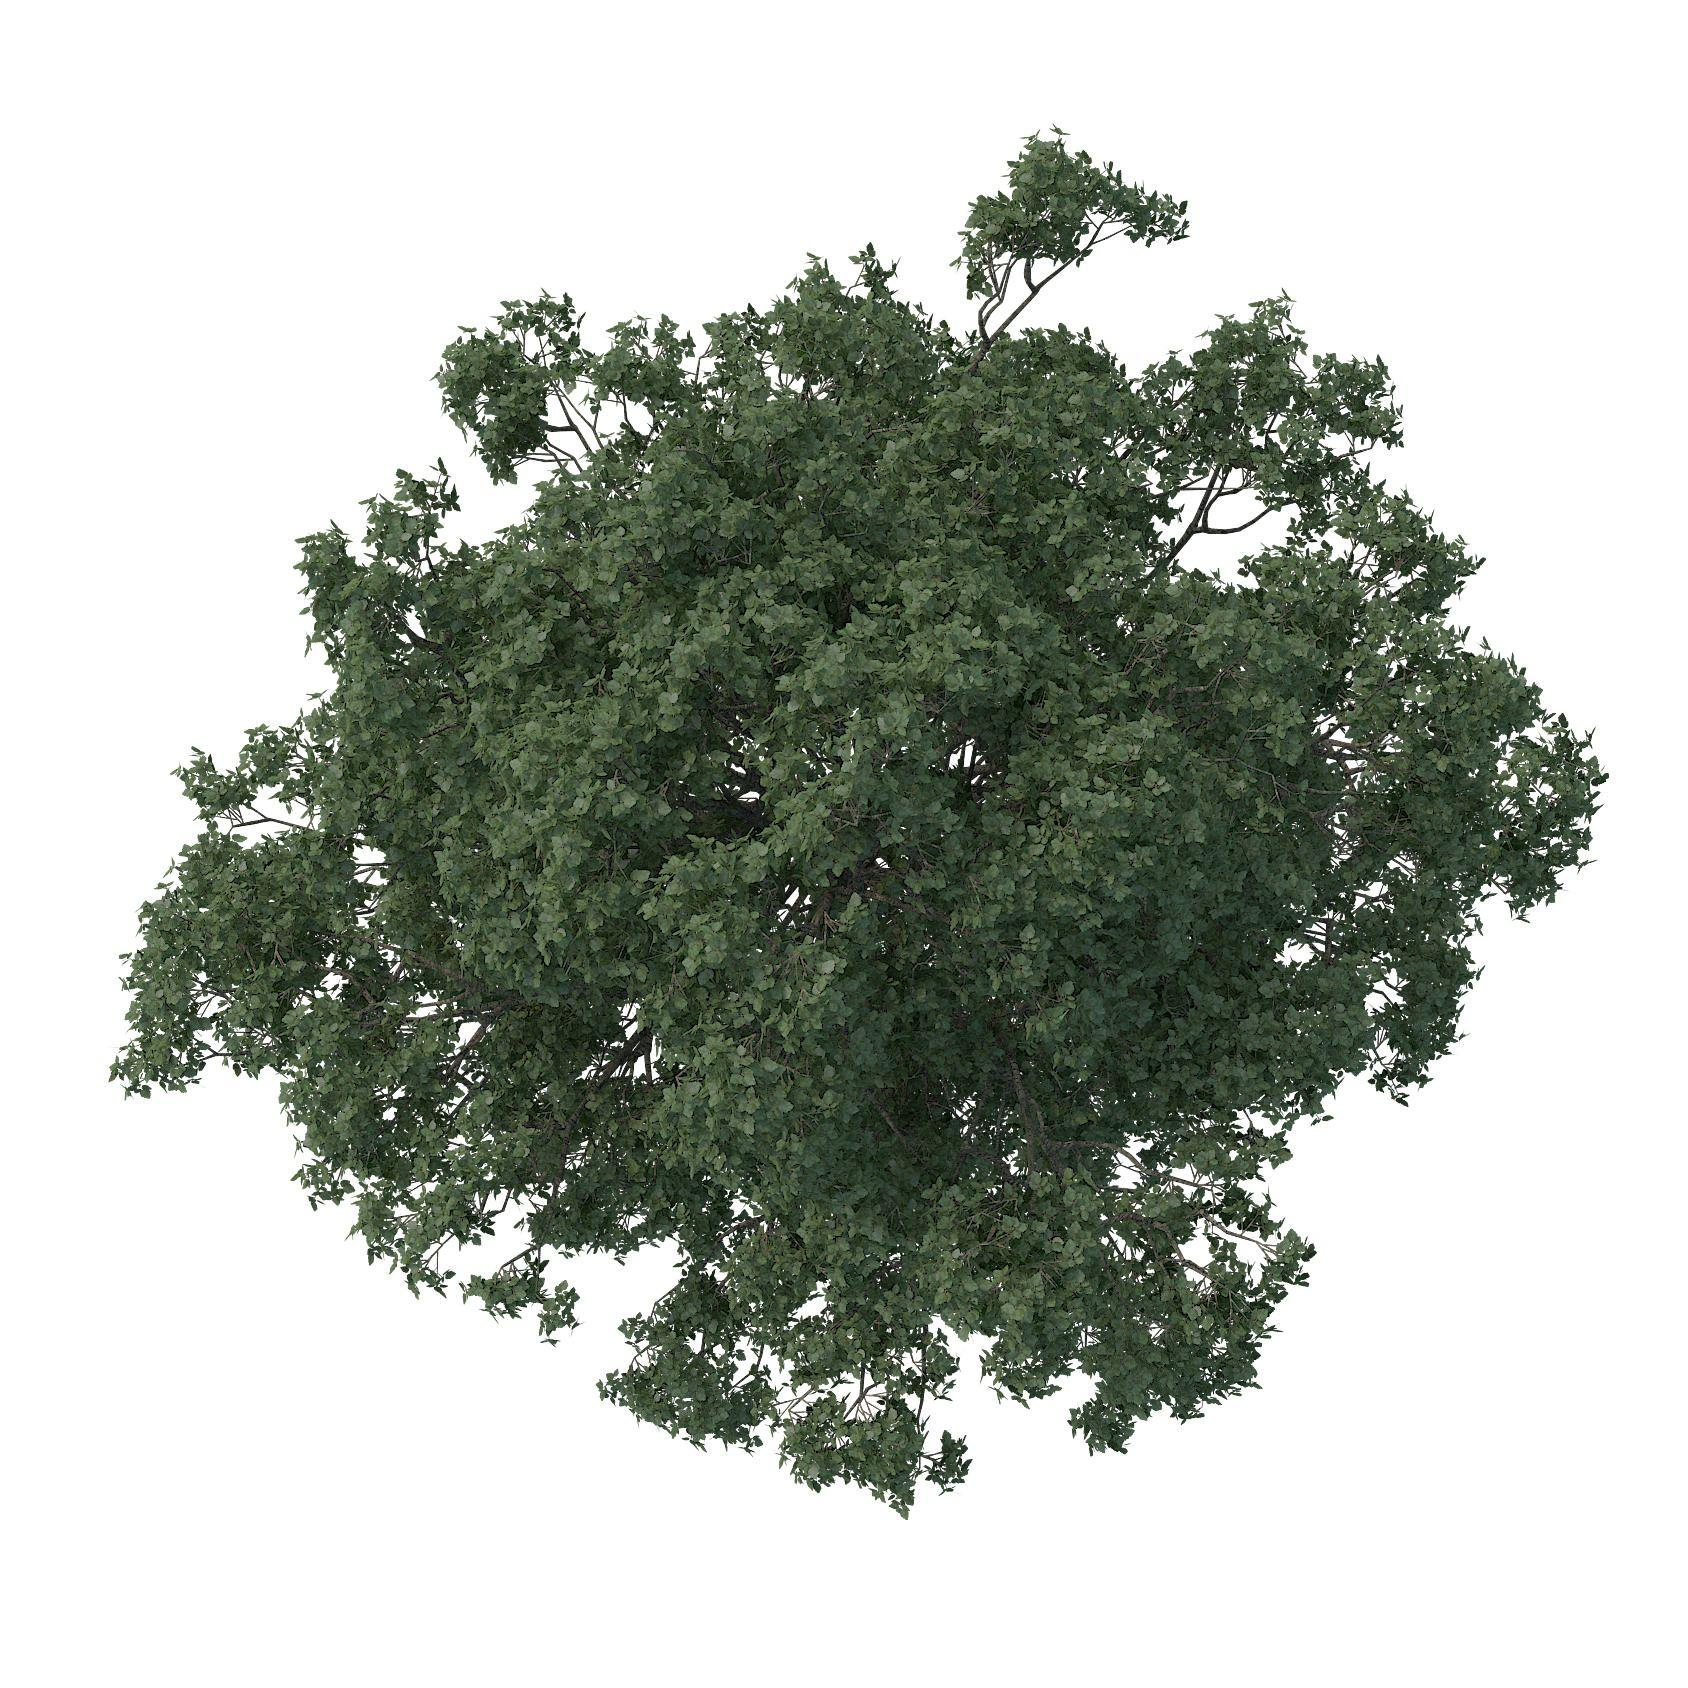 Photoshop Trees Plan Png (+).